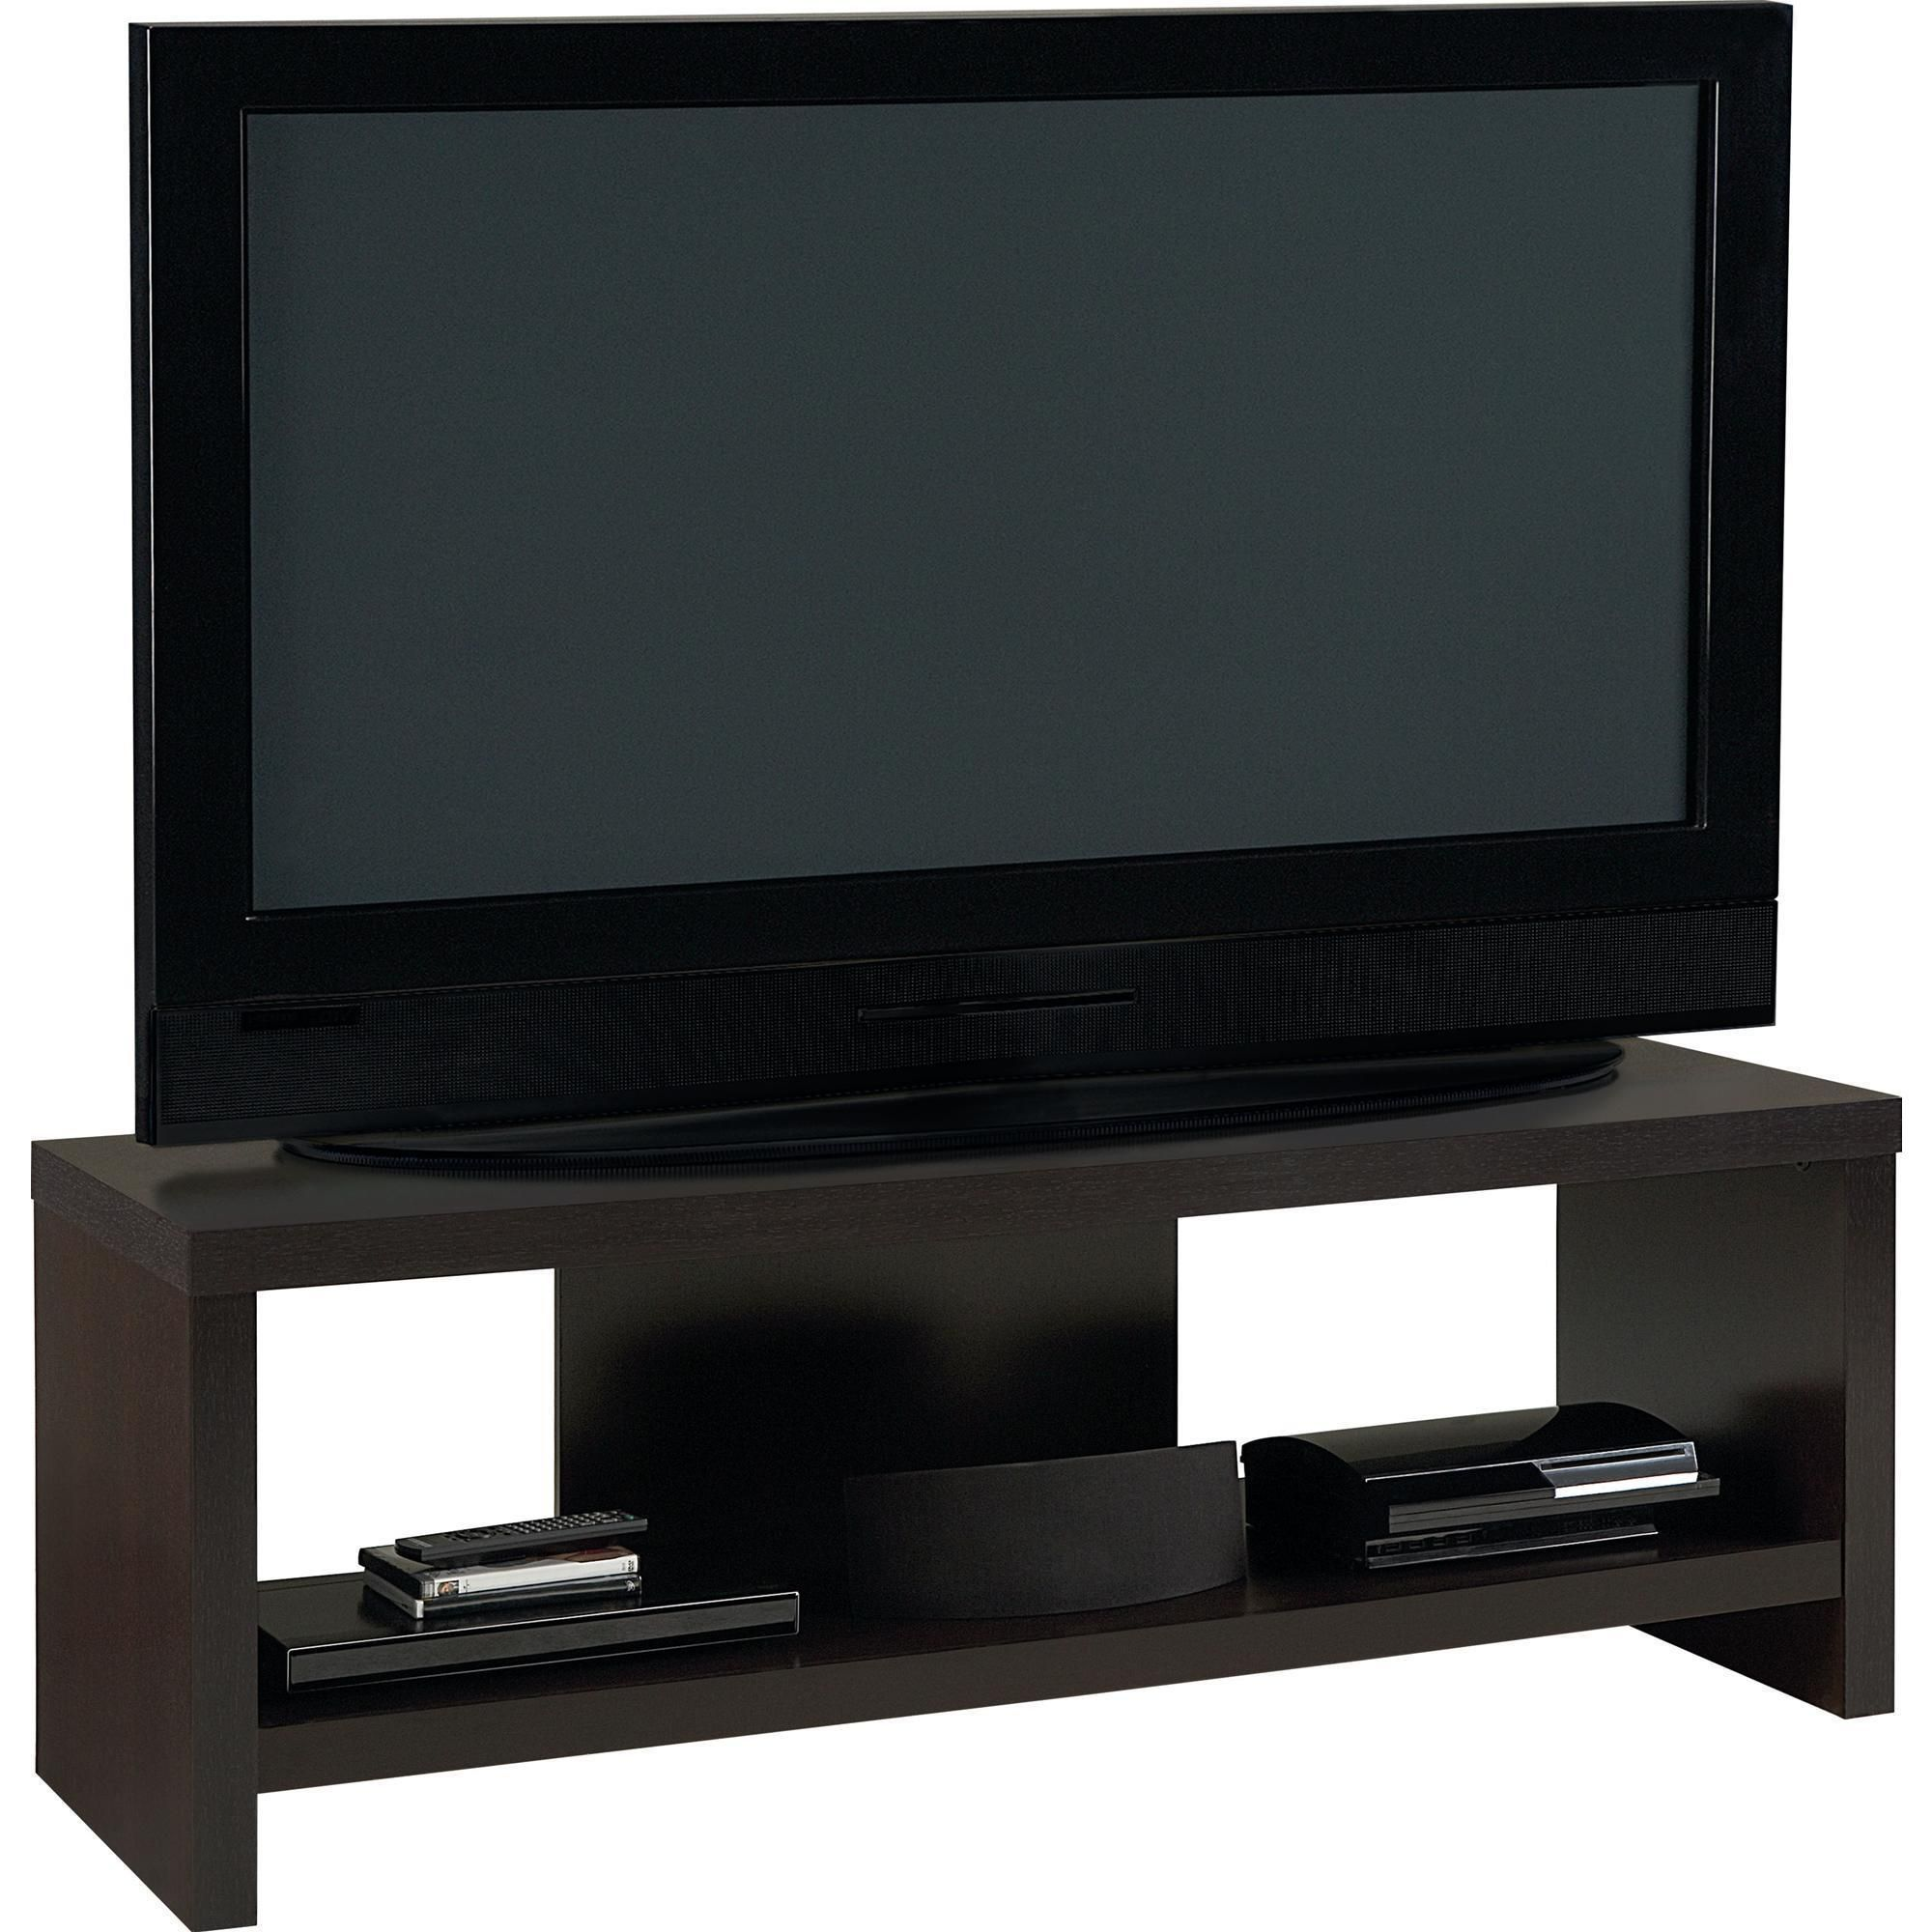 This Sleek Contemporary Tv Stand By Altra Holds Flat Panel Tvs Up